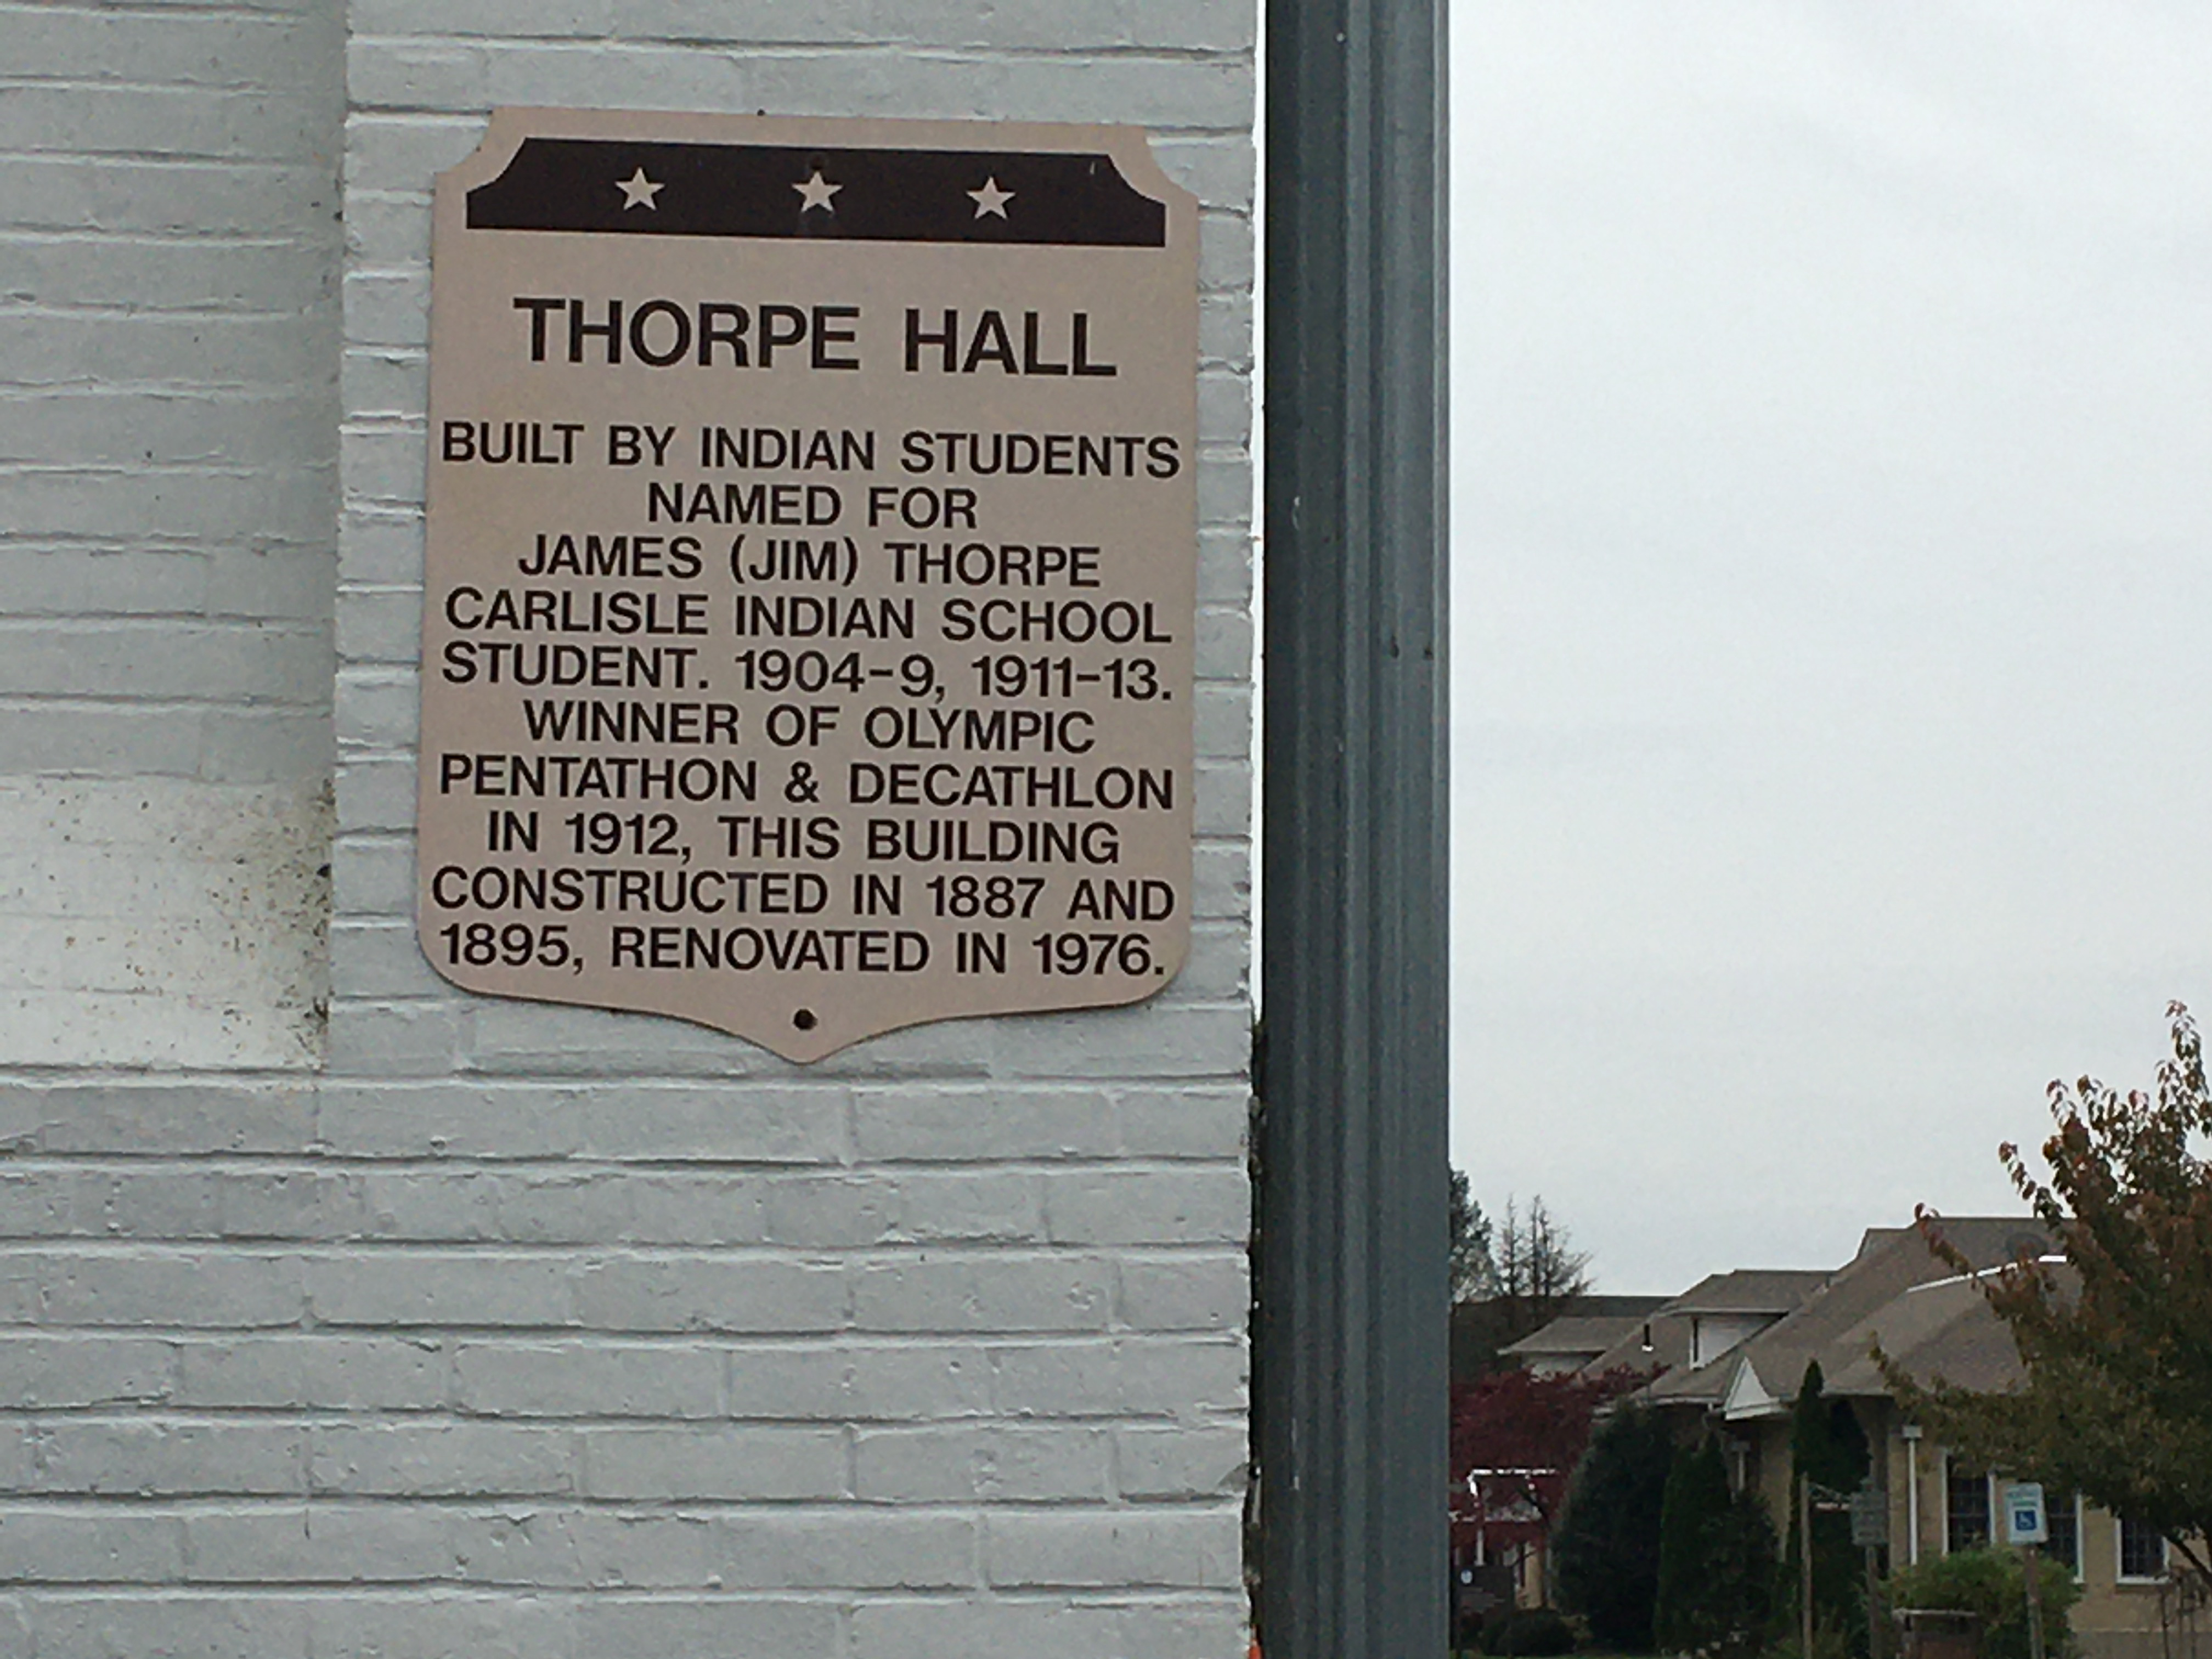 Historical marker on the building.